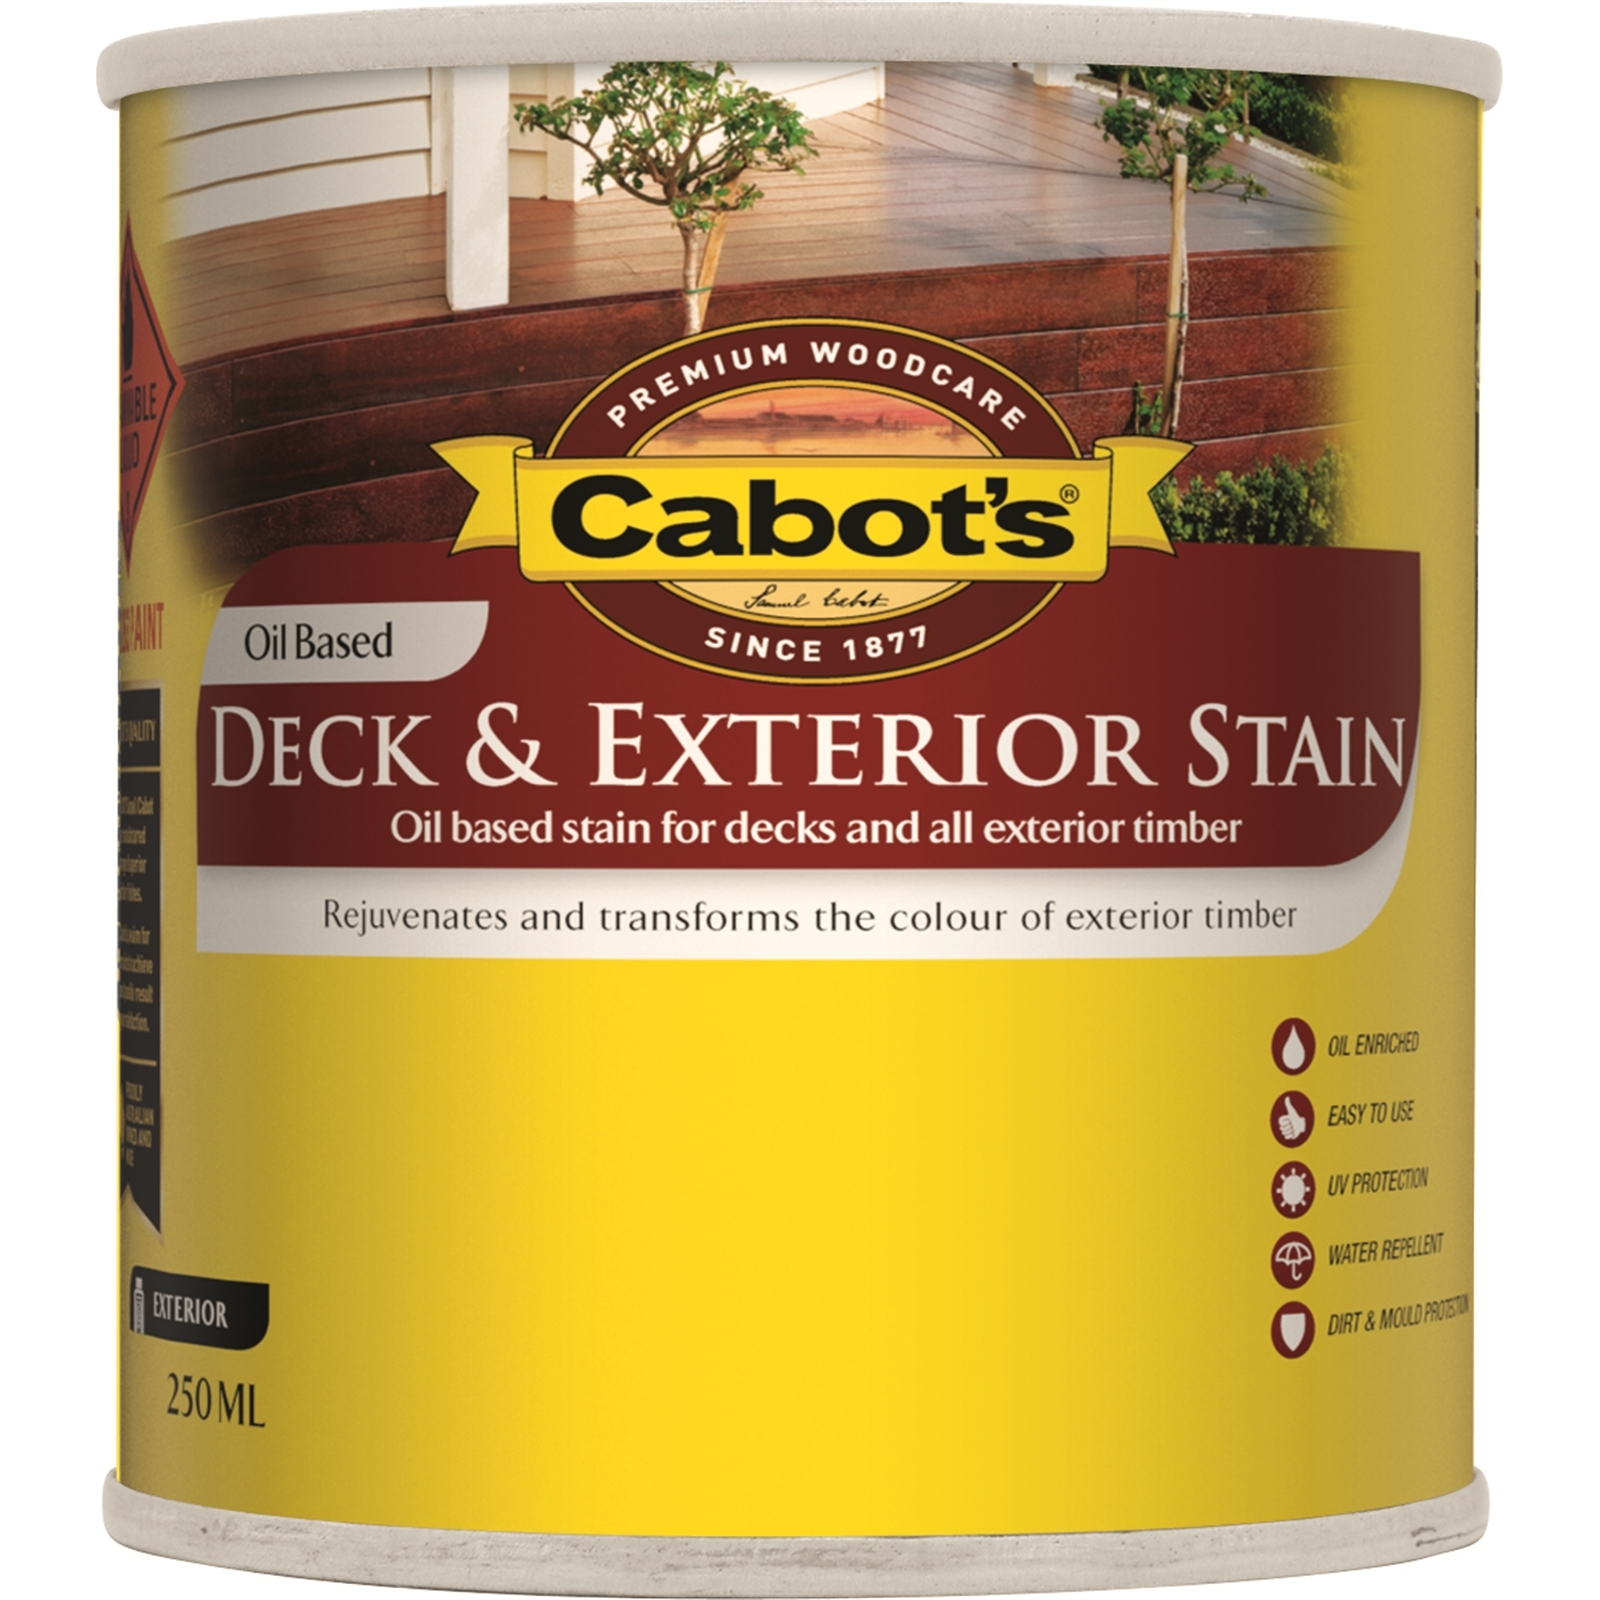 Cabot's 250ml Oil Based Merbau Deck And Exterior Timber Stain